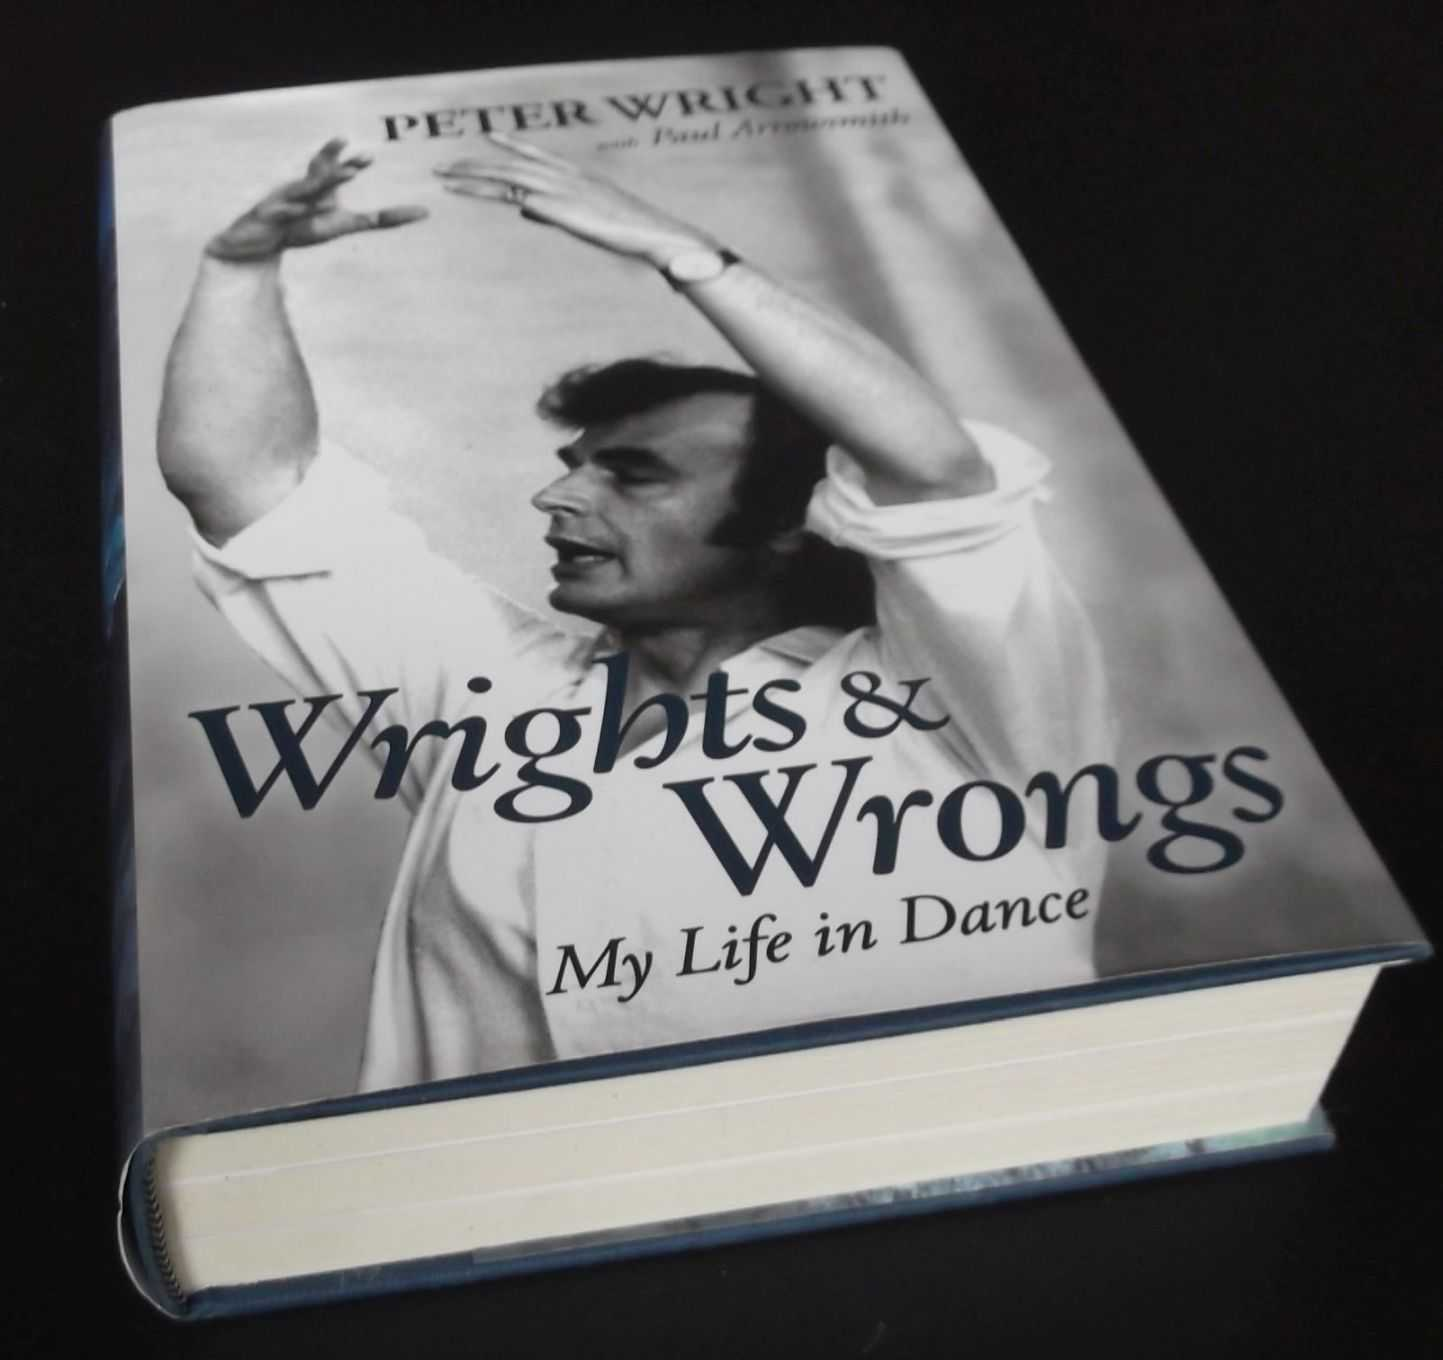 PETER WRIGHT - Wrights & Wrongs